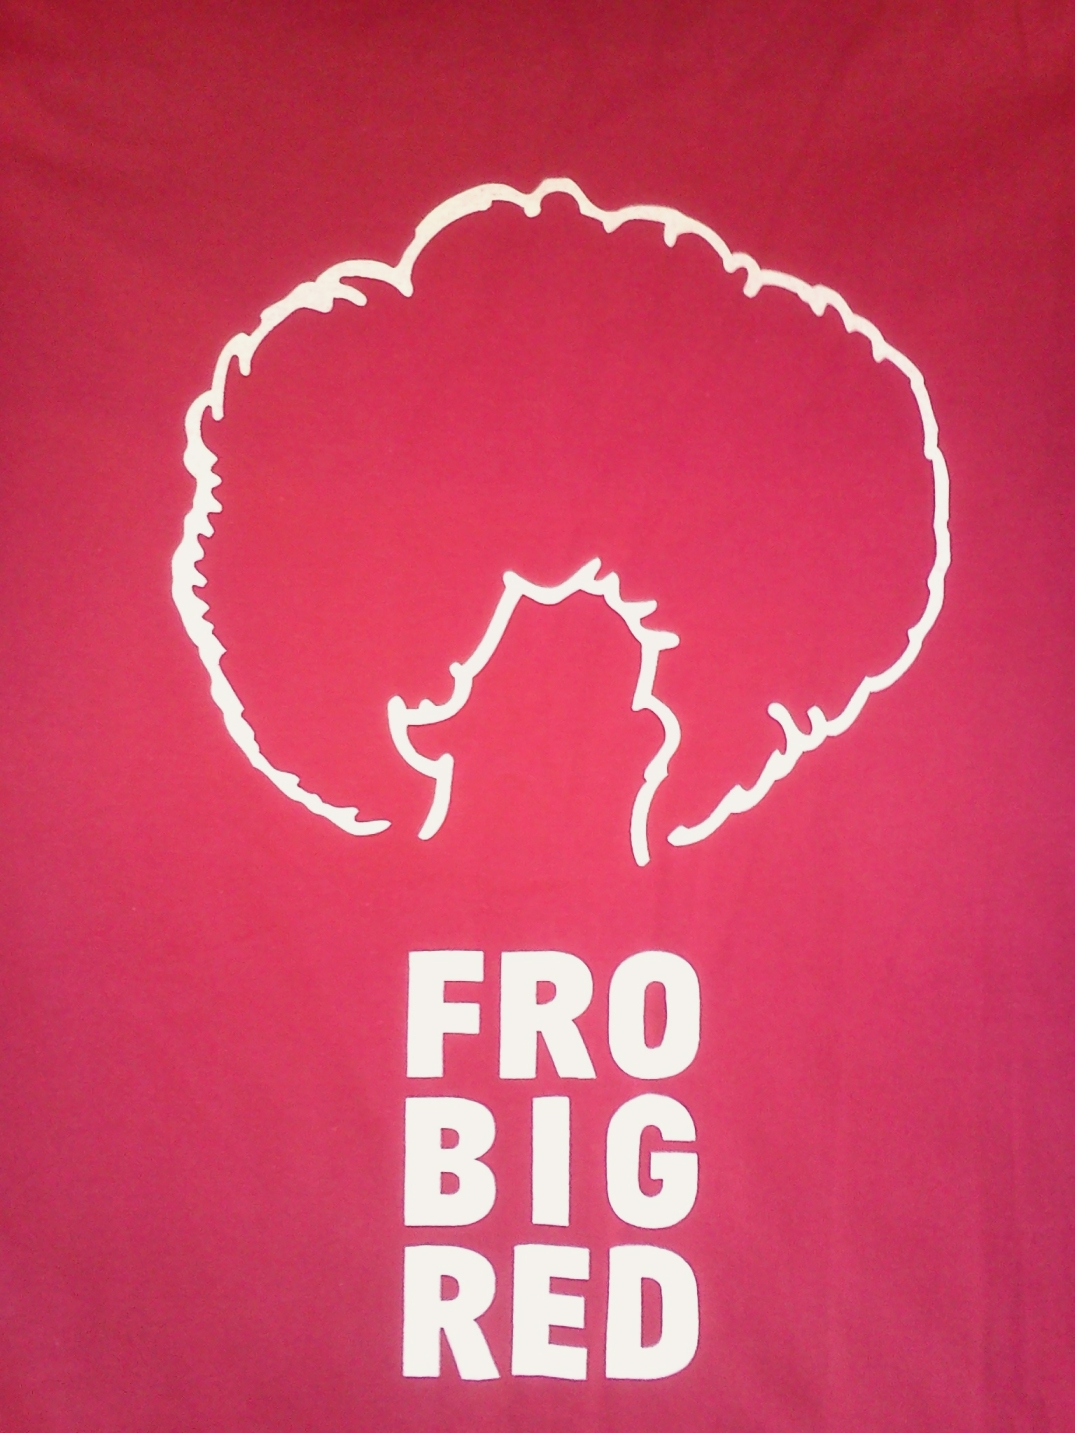 fro big red